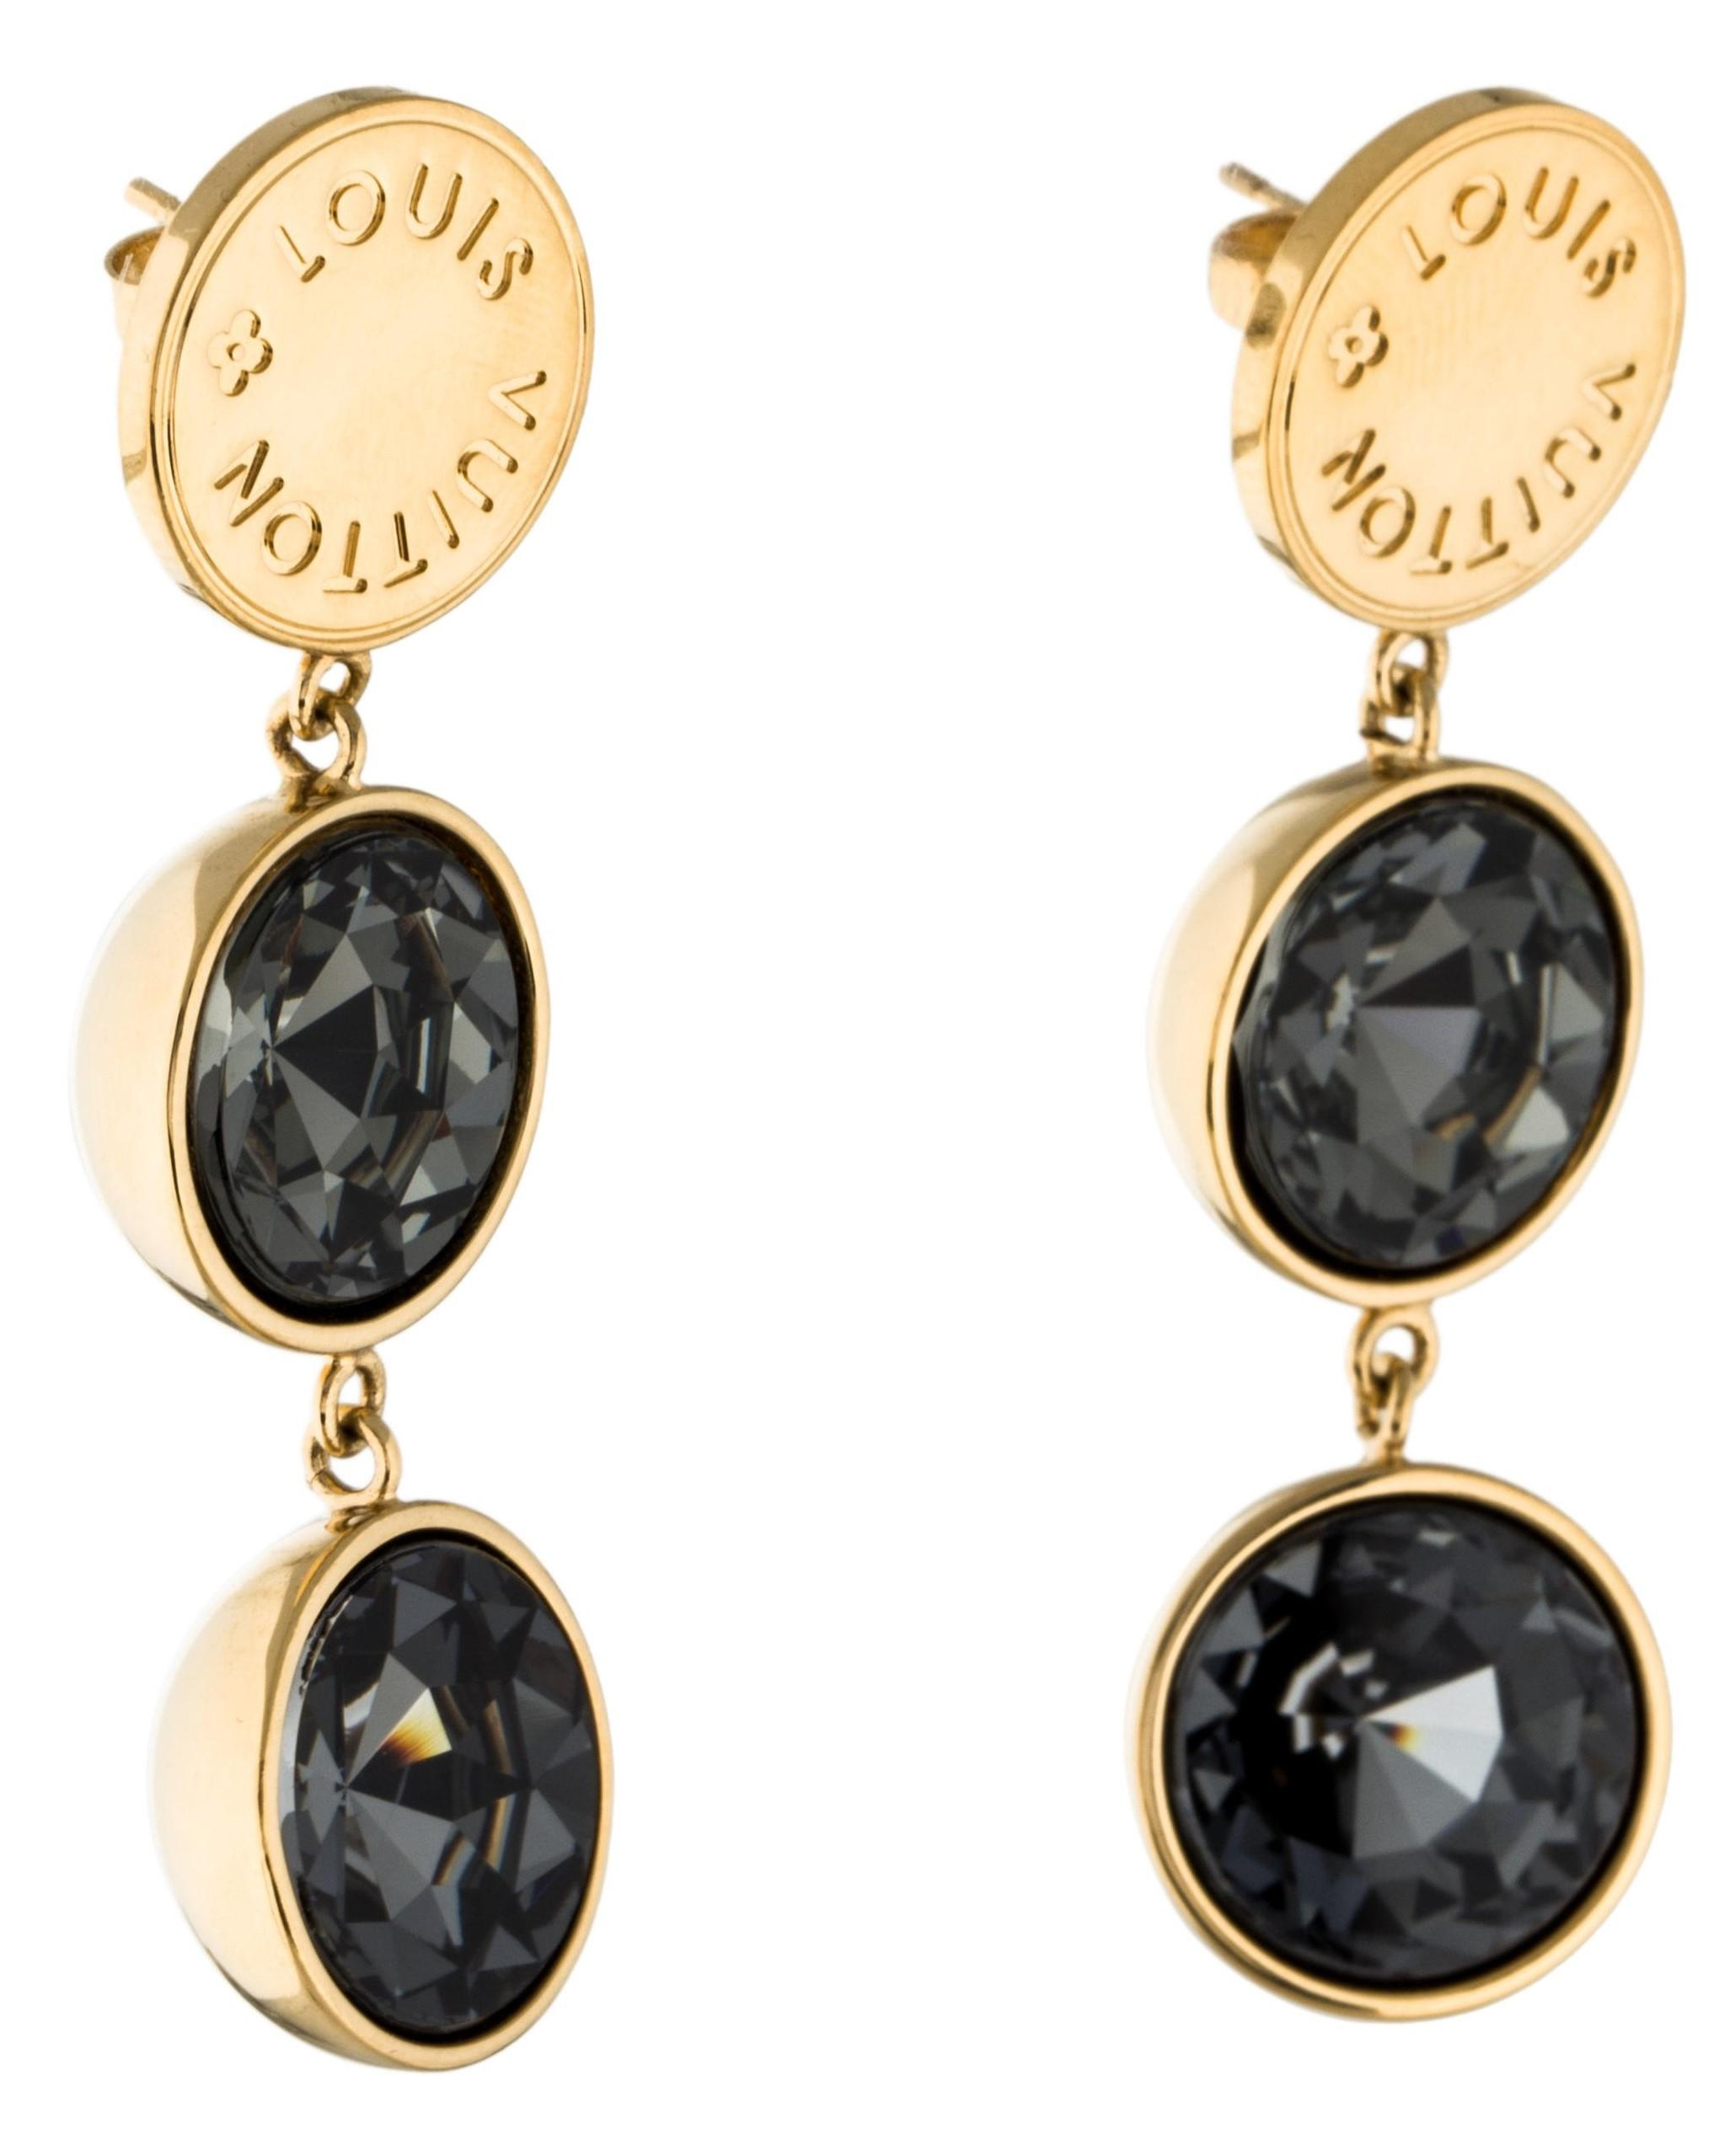 louis vuitton earrings mens. louis vuitton gold-tone swarovski crystal lv charm earrings mens